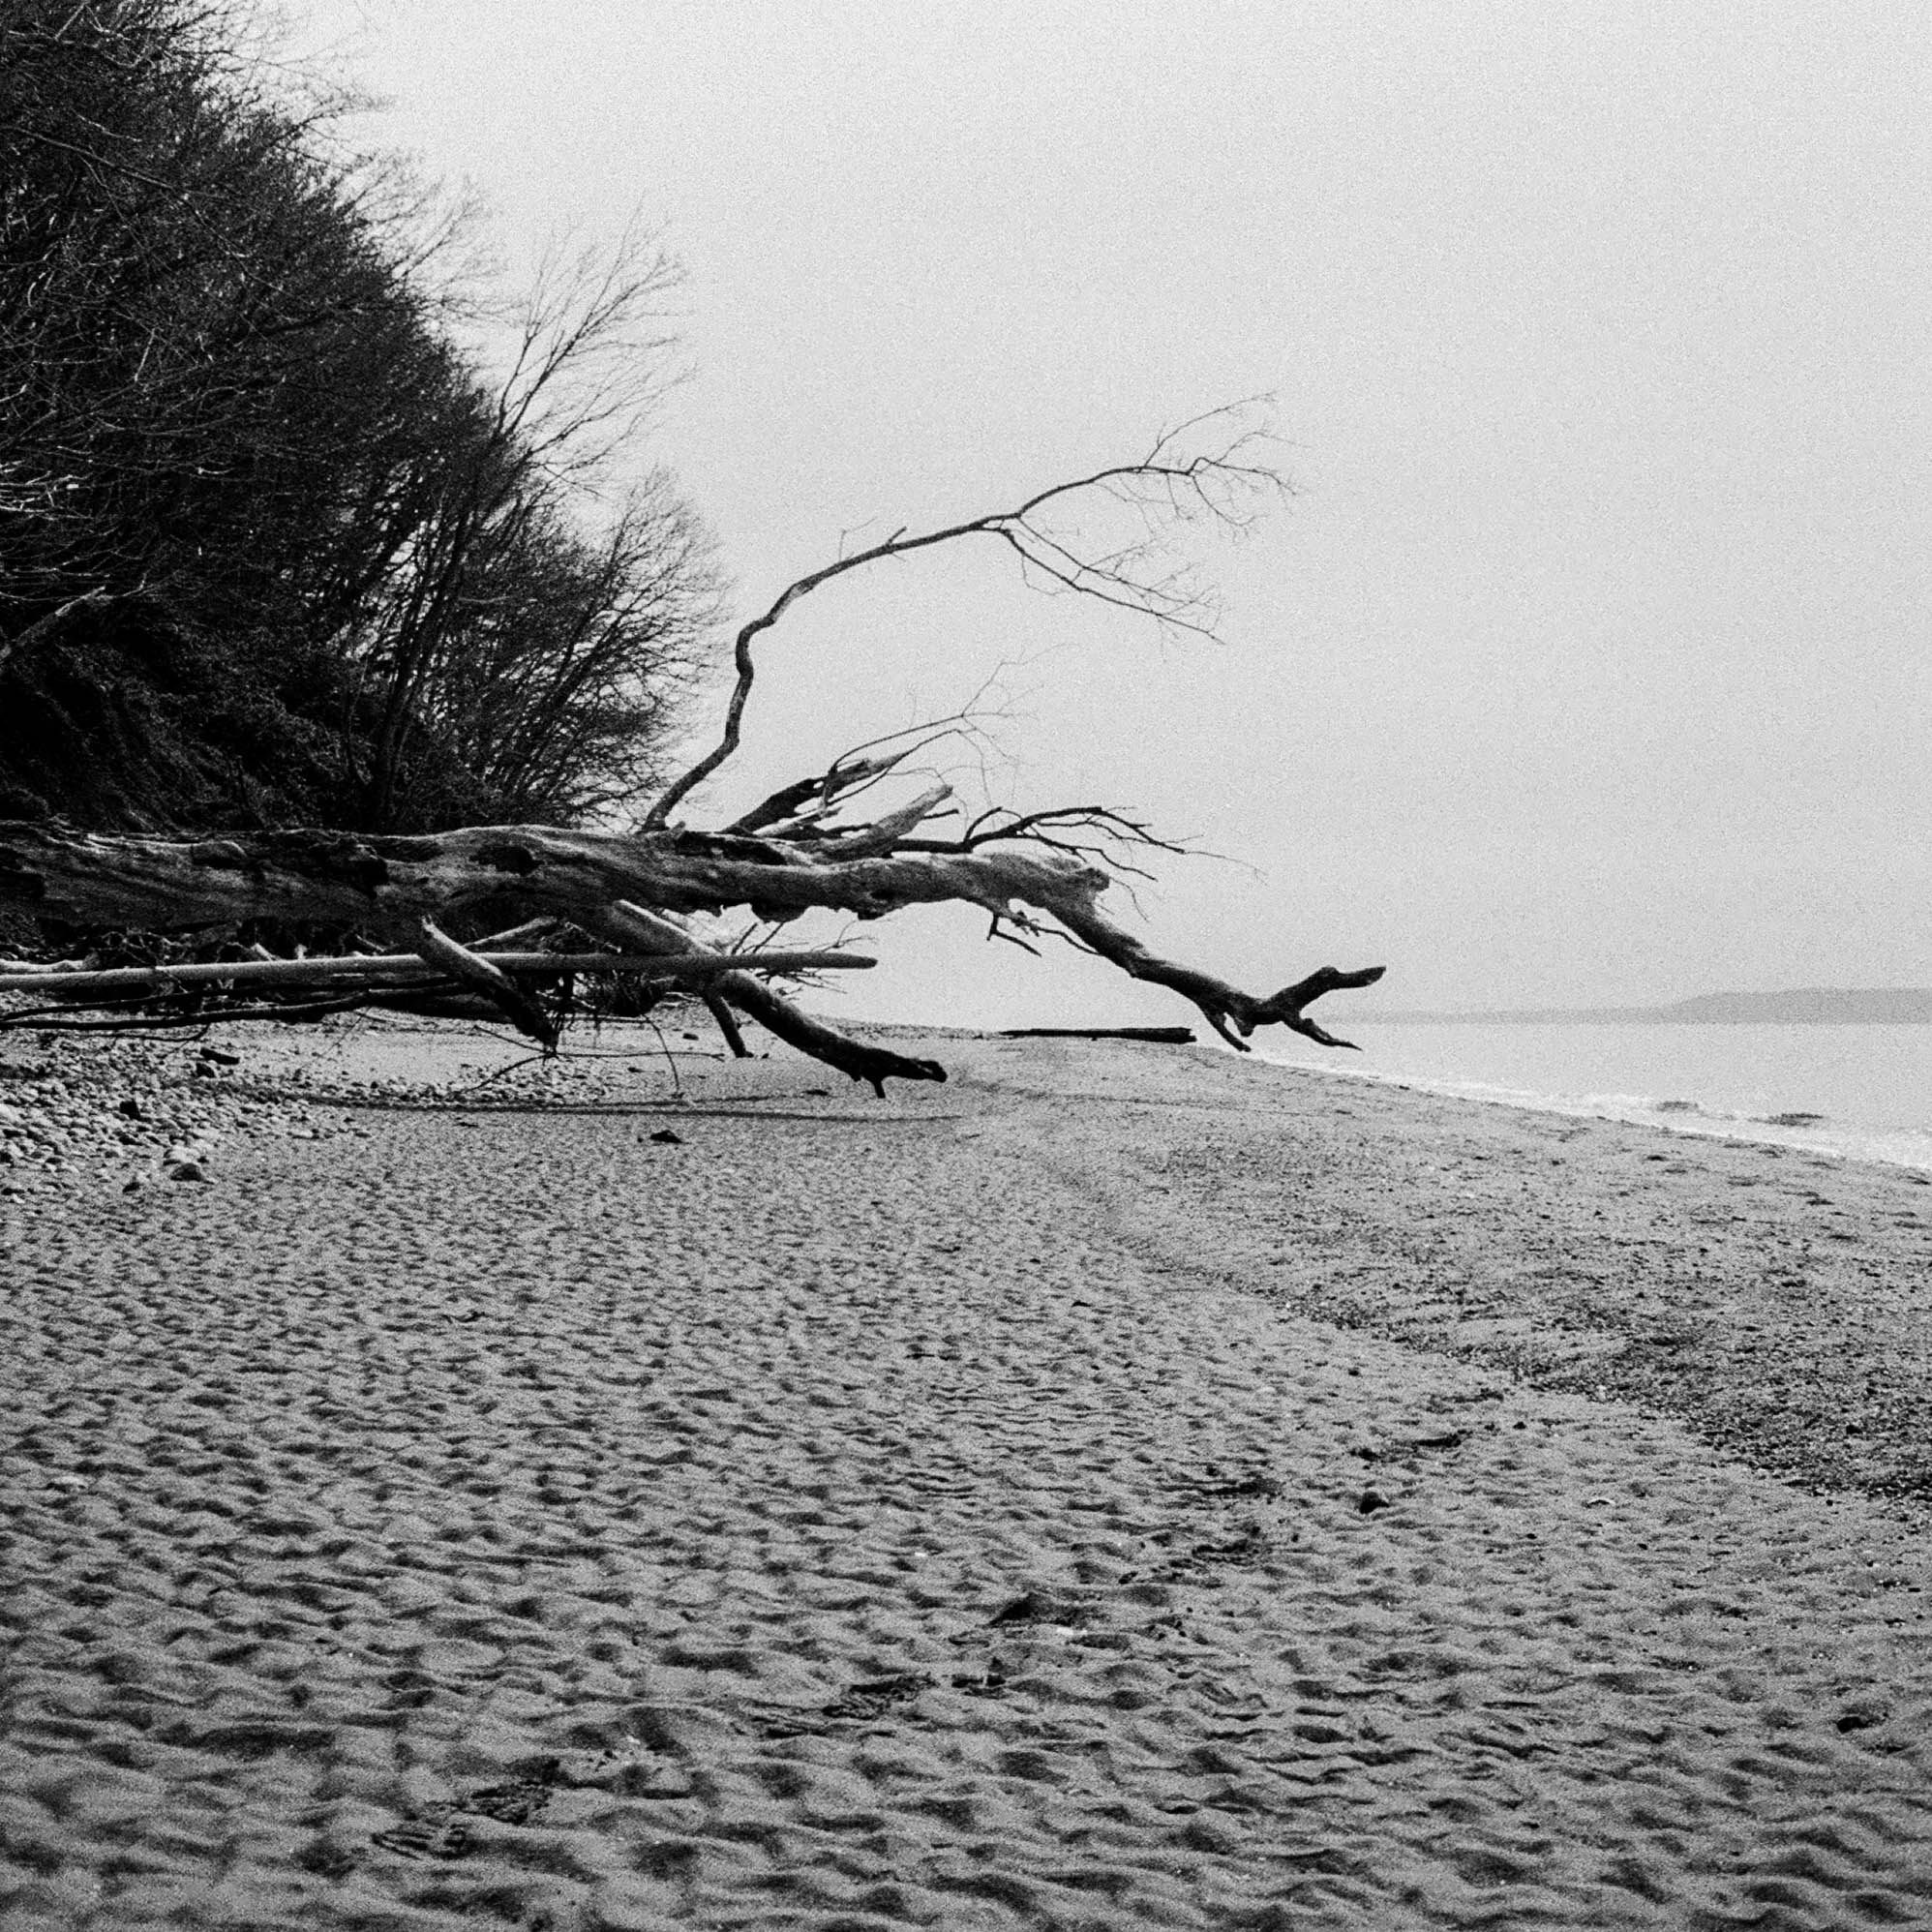 Beach with Fallen Branch